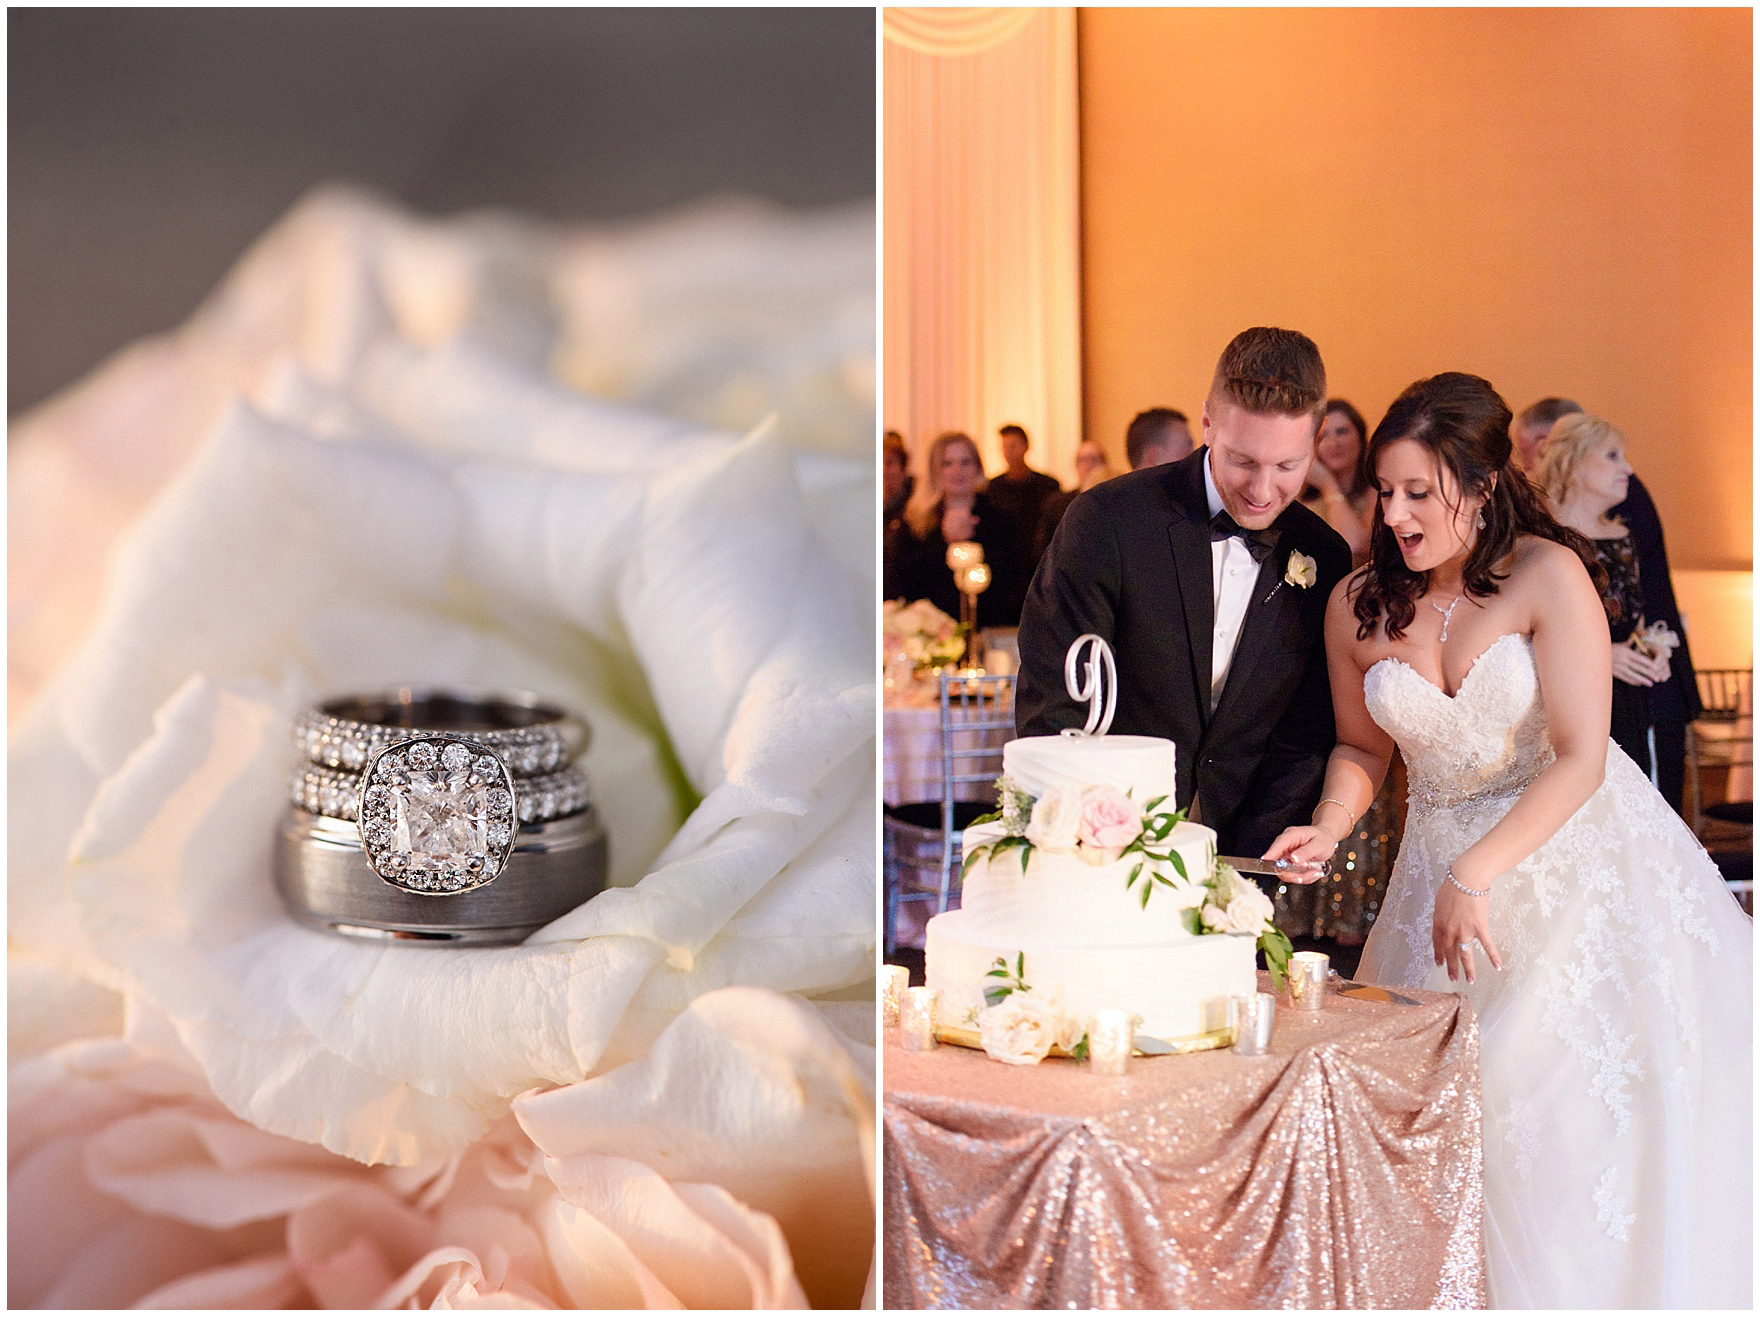 An elegant crystal and candlelit reception for a Hotel Arista Naperville wedding.